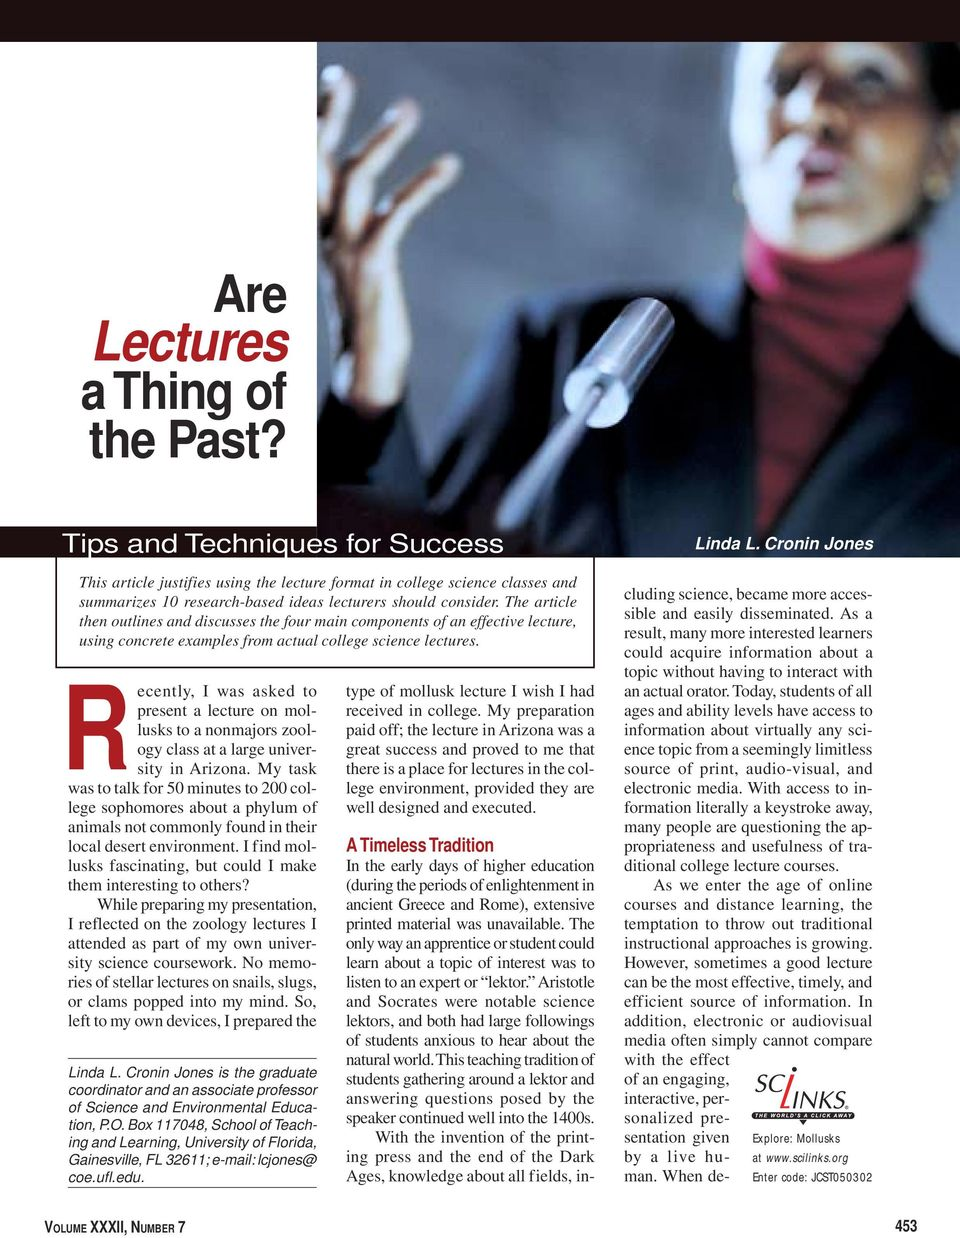 The article then outlines and discusses the four main components of an effective lecture, using concrete examples from actual college science lectures.